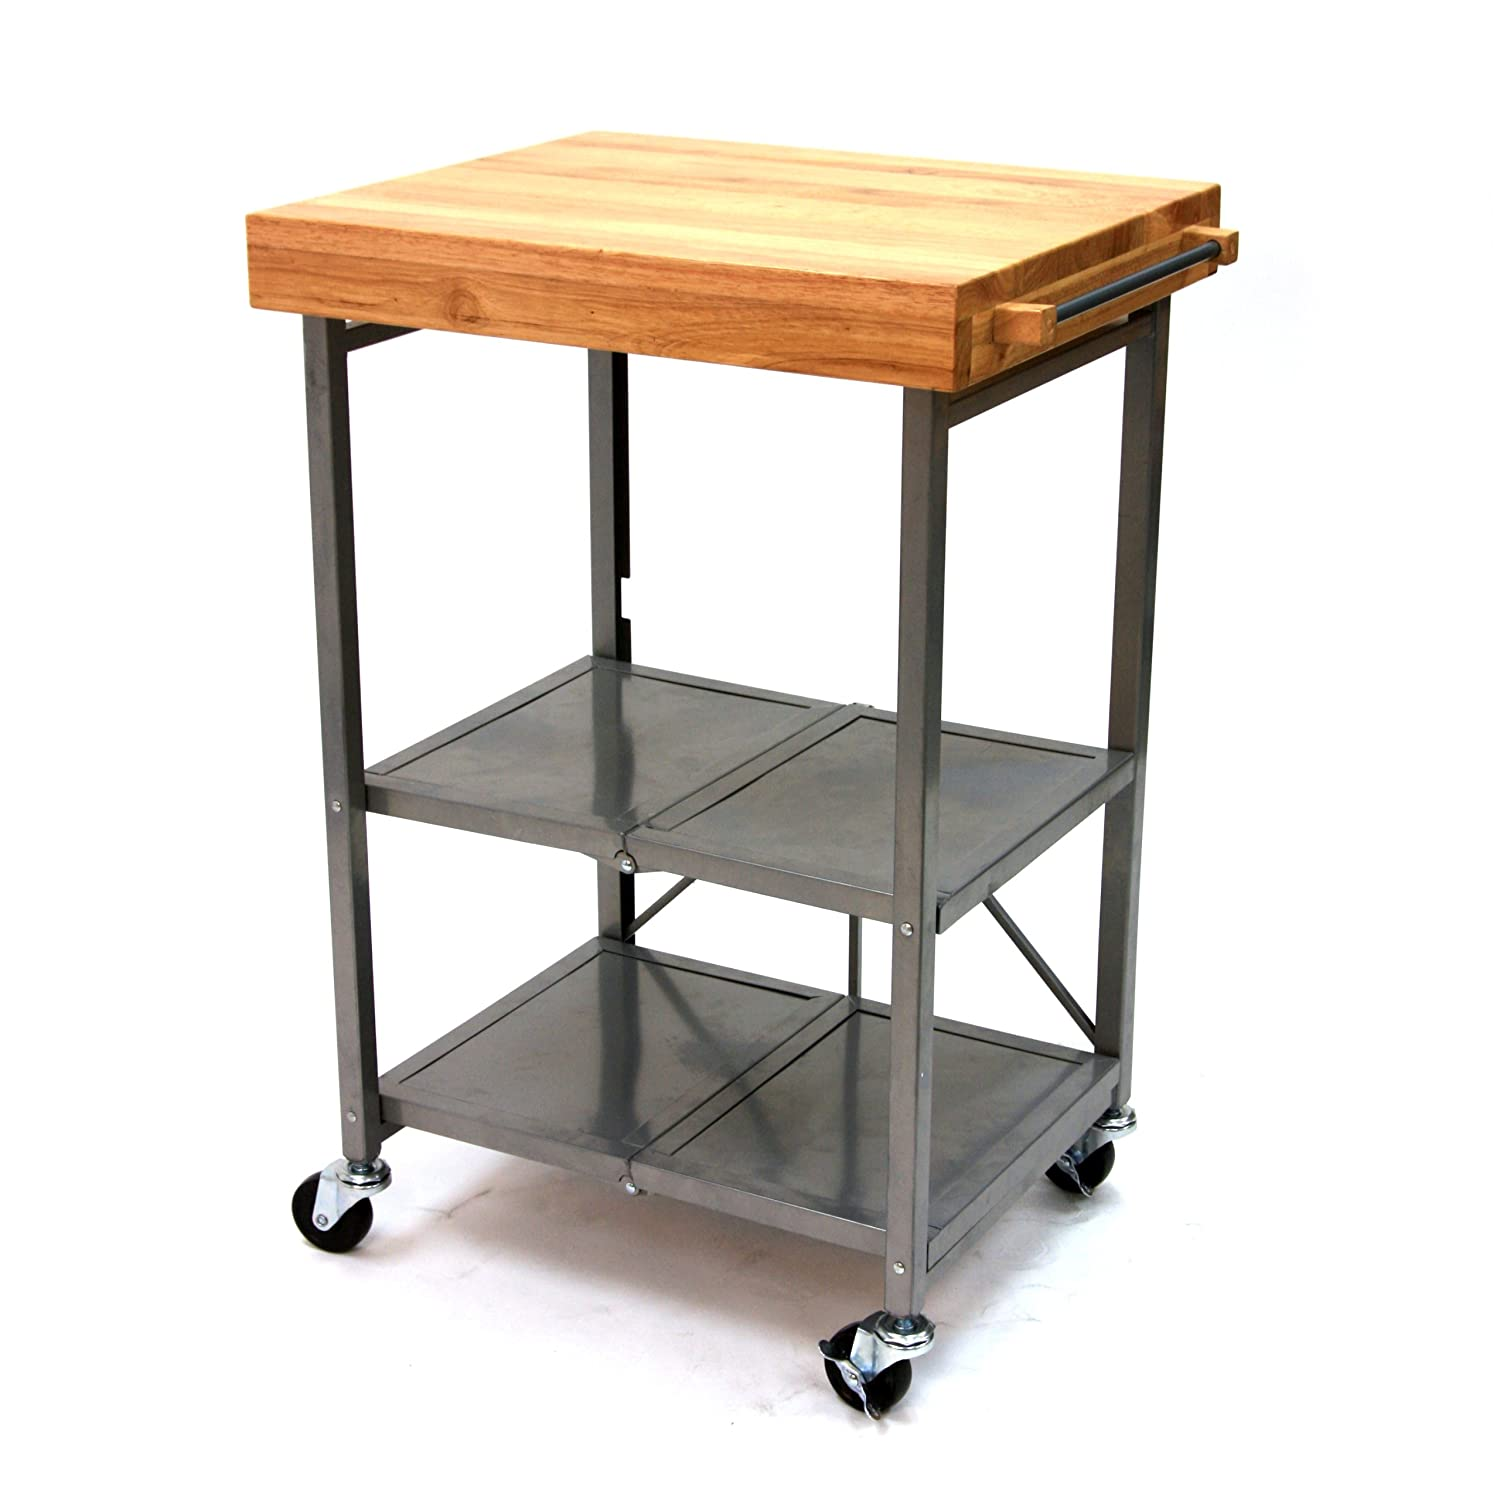 origami rbt 02 kitchen cart   kitchen storage carts   amazon com  rh   amazon com